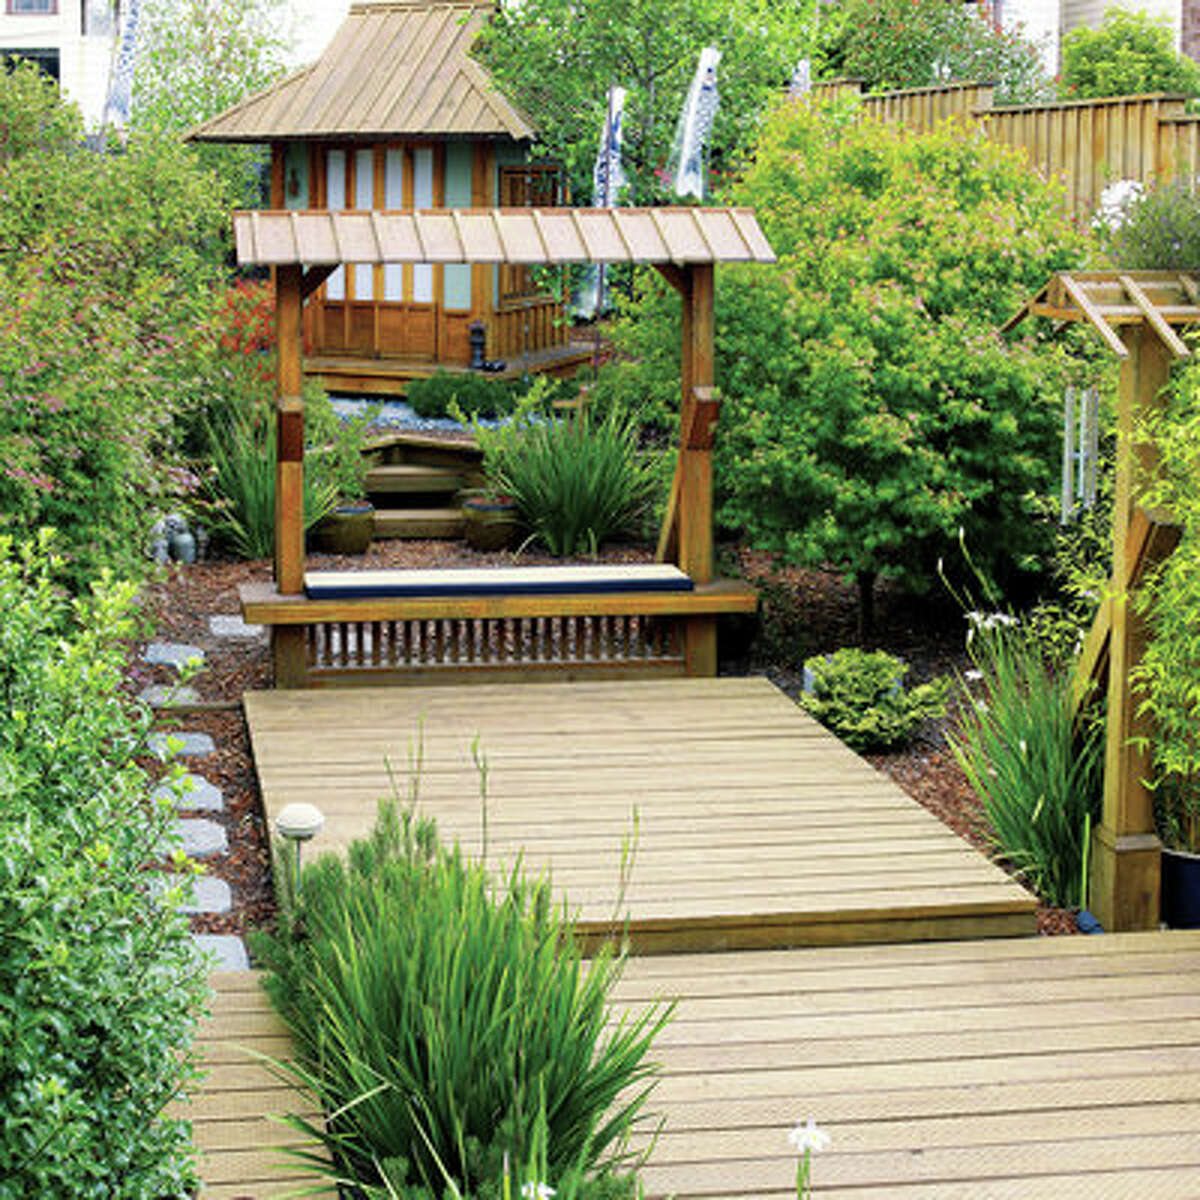 New dimensions David Polifko transformed his backyard with three decks of different sizes, at three different levels. A deck also wraps around an 8-feet-square teahouse, angled to fit a tight corner. See more pictures of his decks and garden